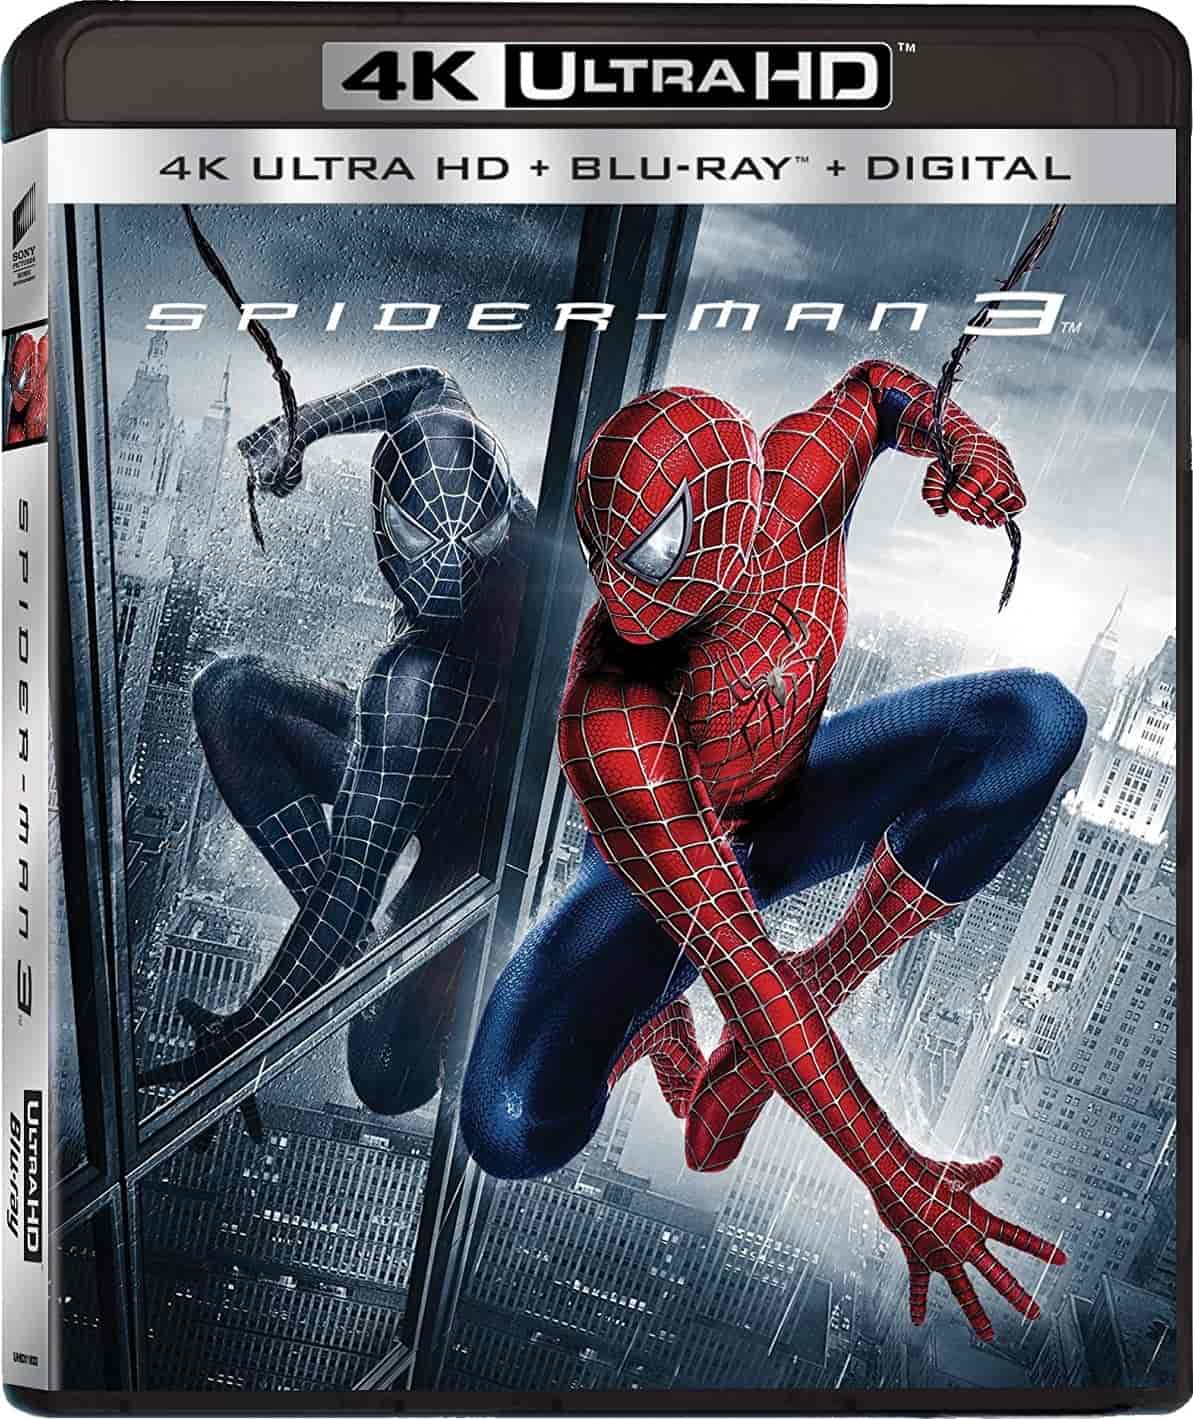 Spider-Man 3 4K 2007 Ultra HD 2160p